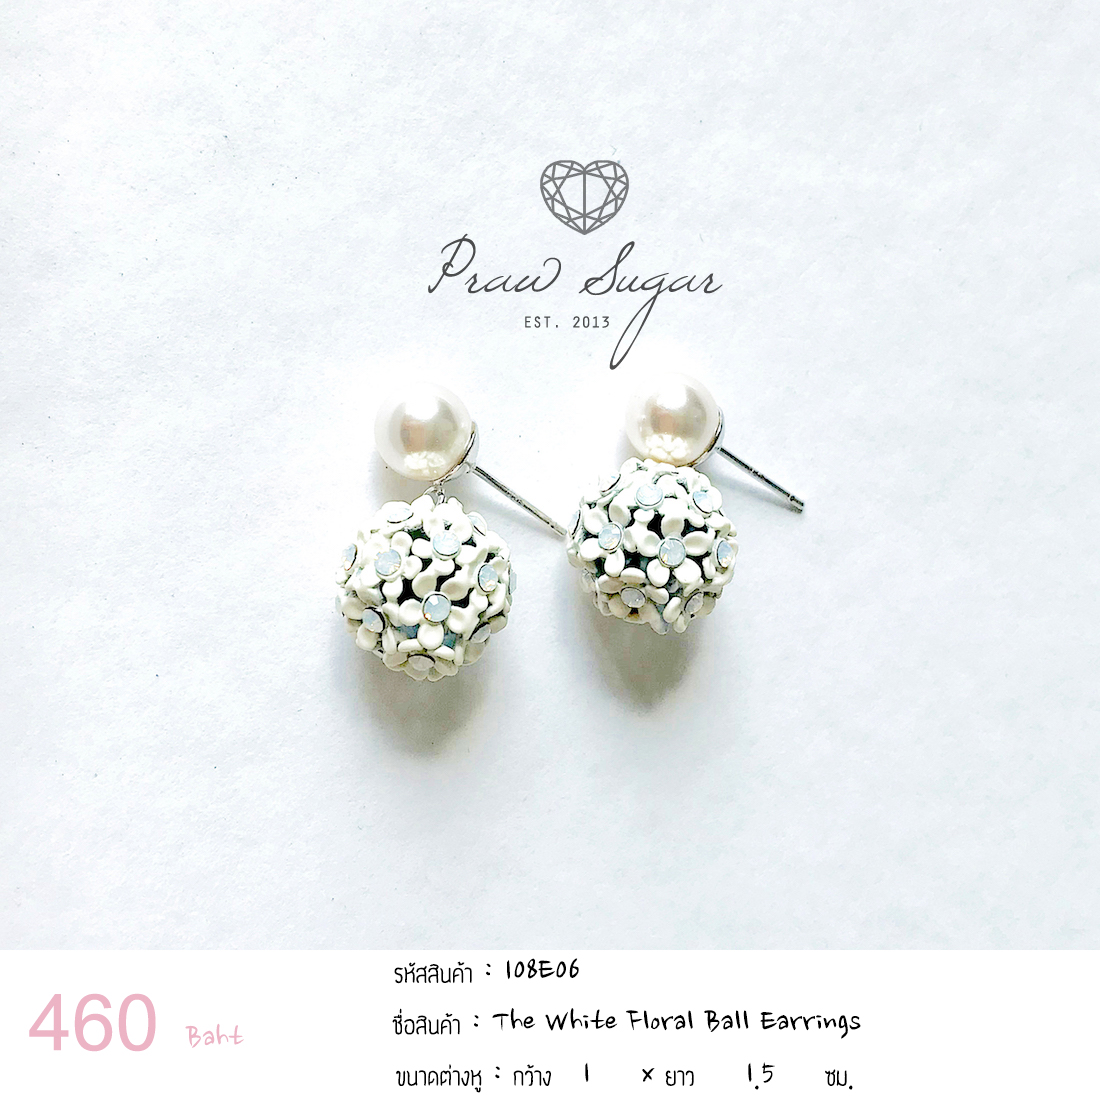 The White Floral Ball Earrings